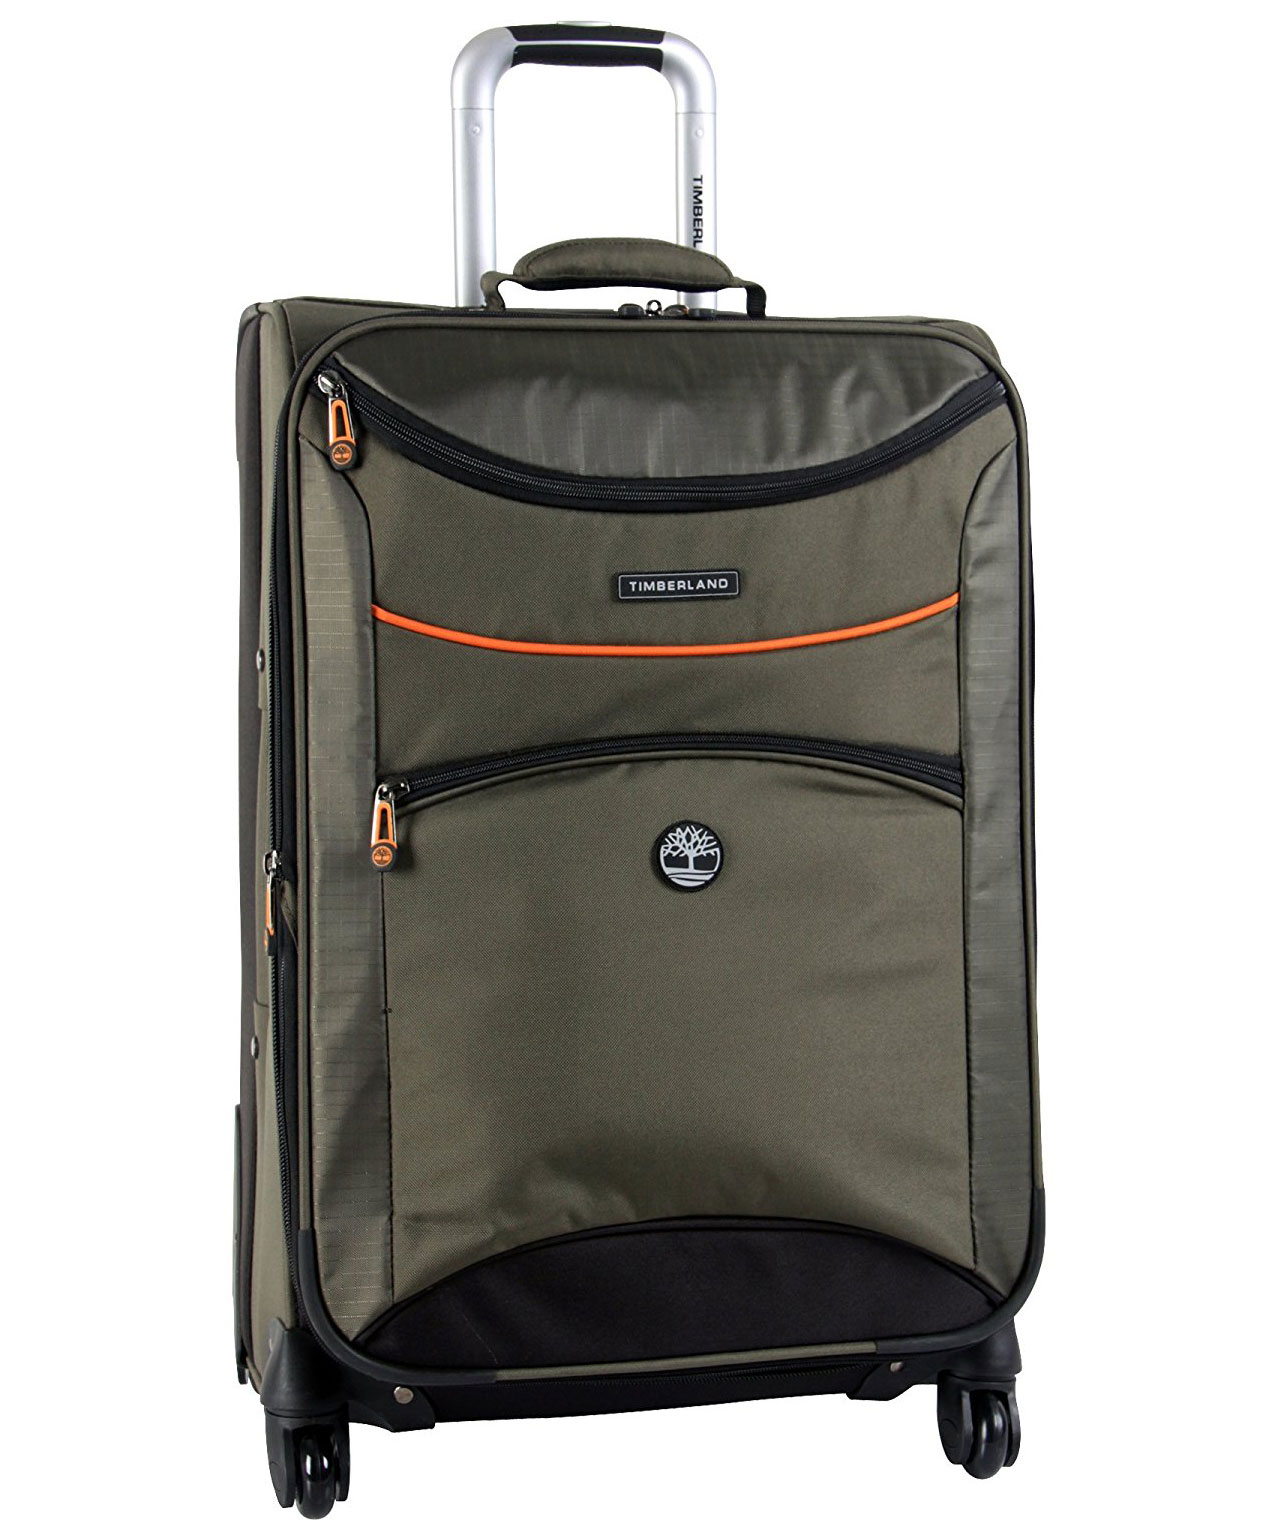 Timberland Luggage Route 4 24  Expandable Spinner